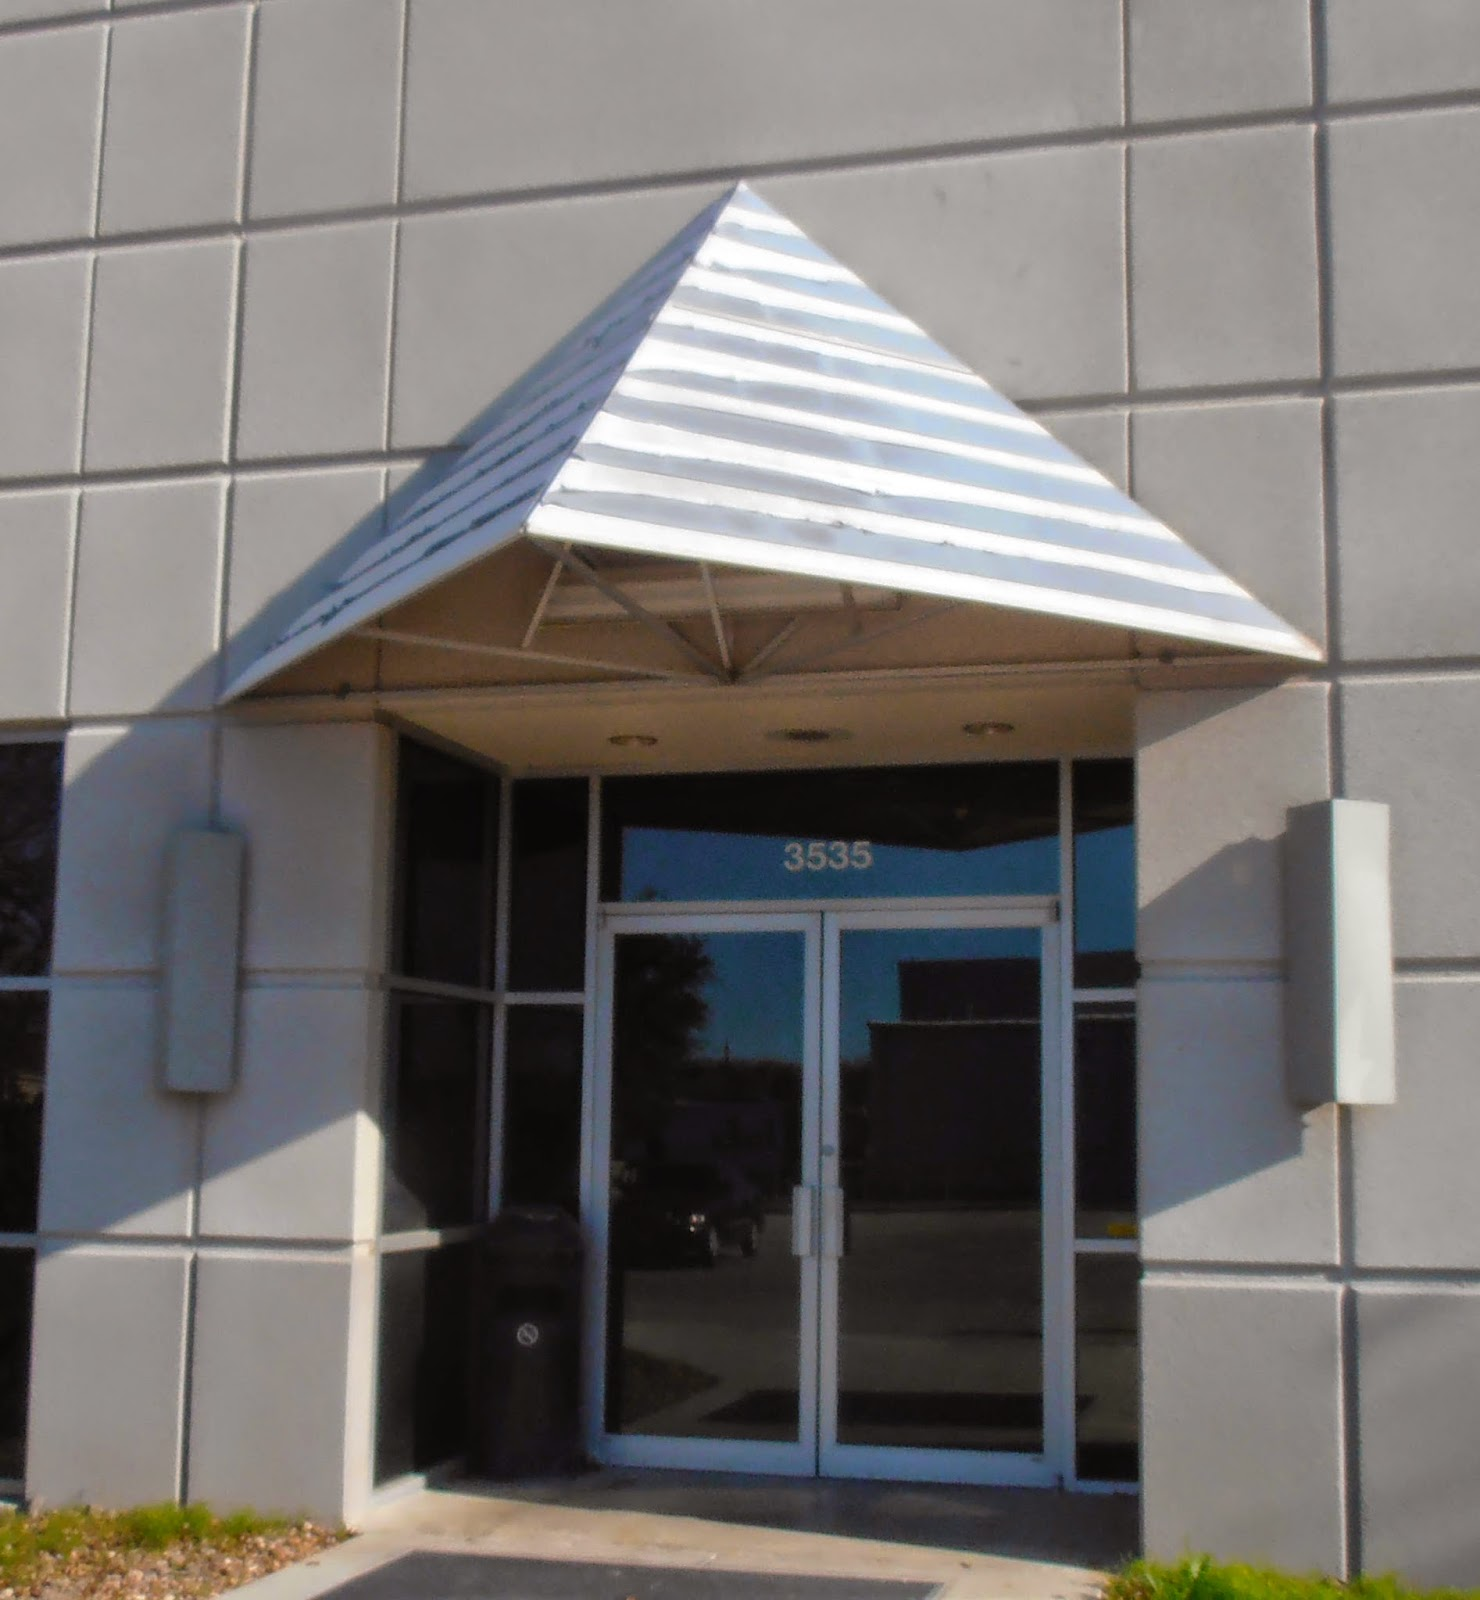 Seguin Canvas Amp Awning Llc What To Do If Your Awning Is